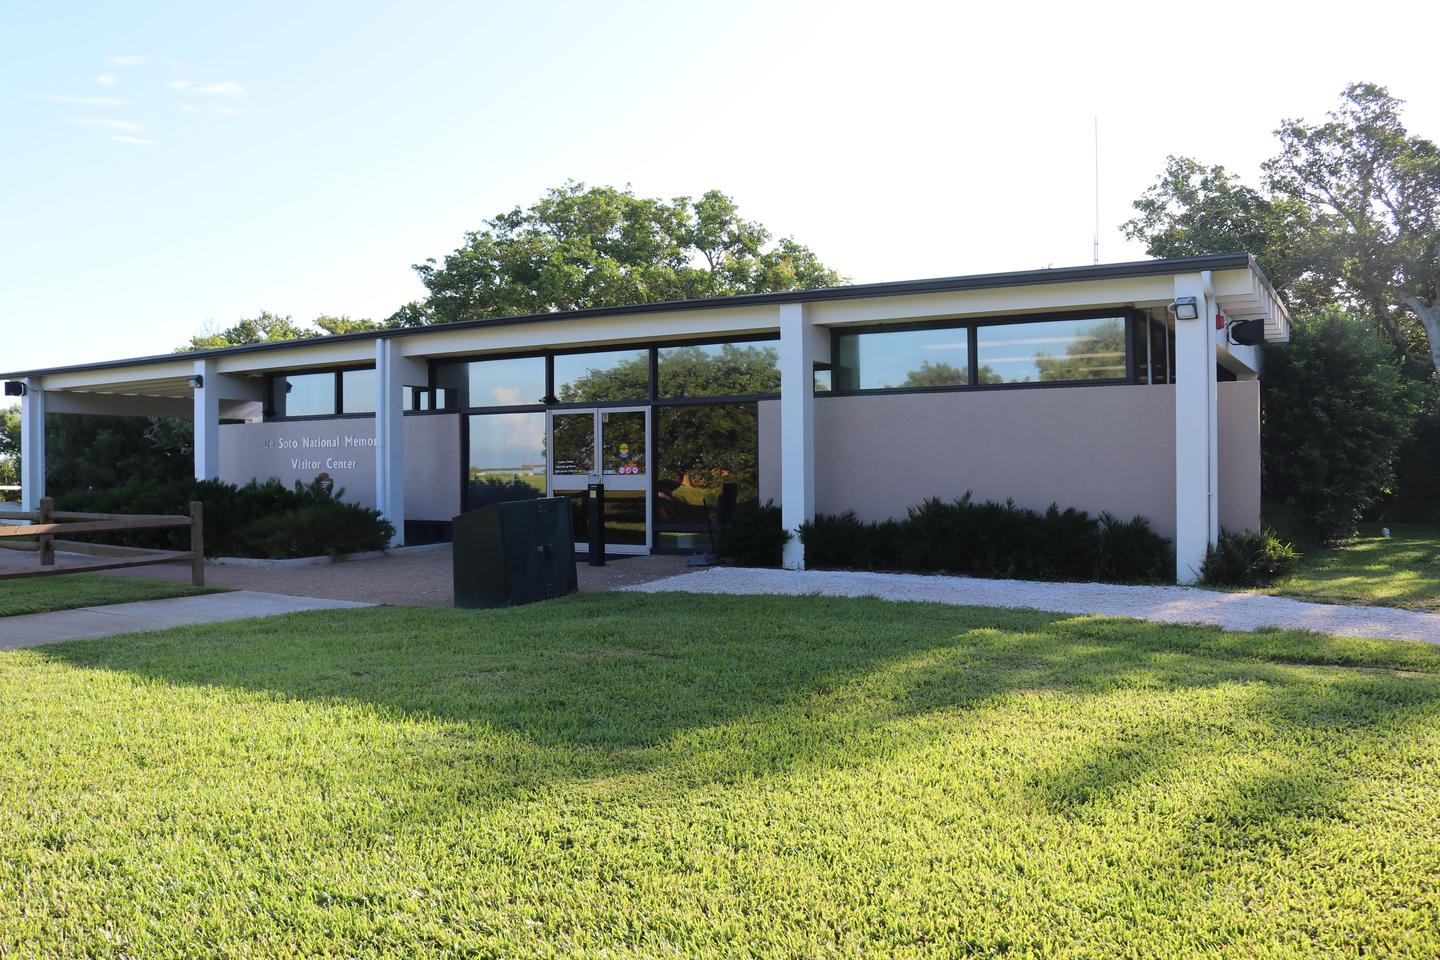 De Soto National Memorial's Visitor CenterOpen year round from 9:00 am to 5:00 pm daily.